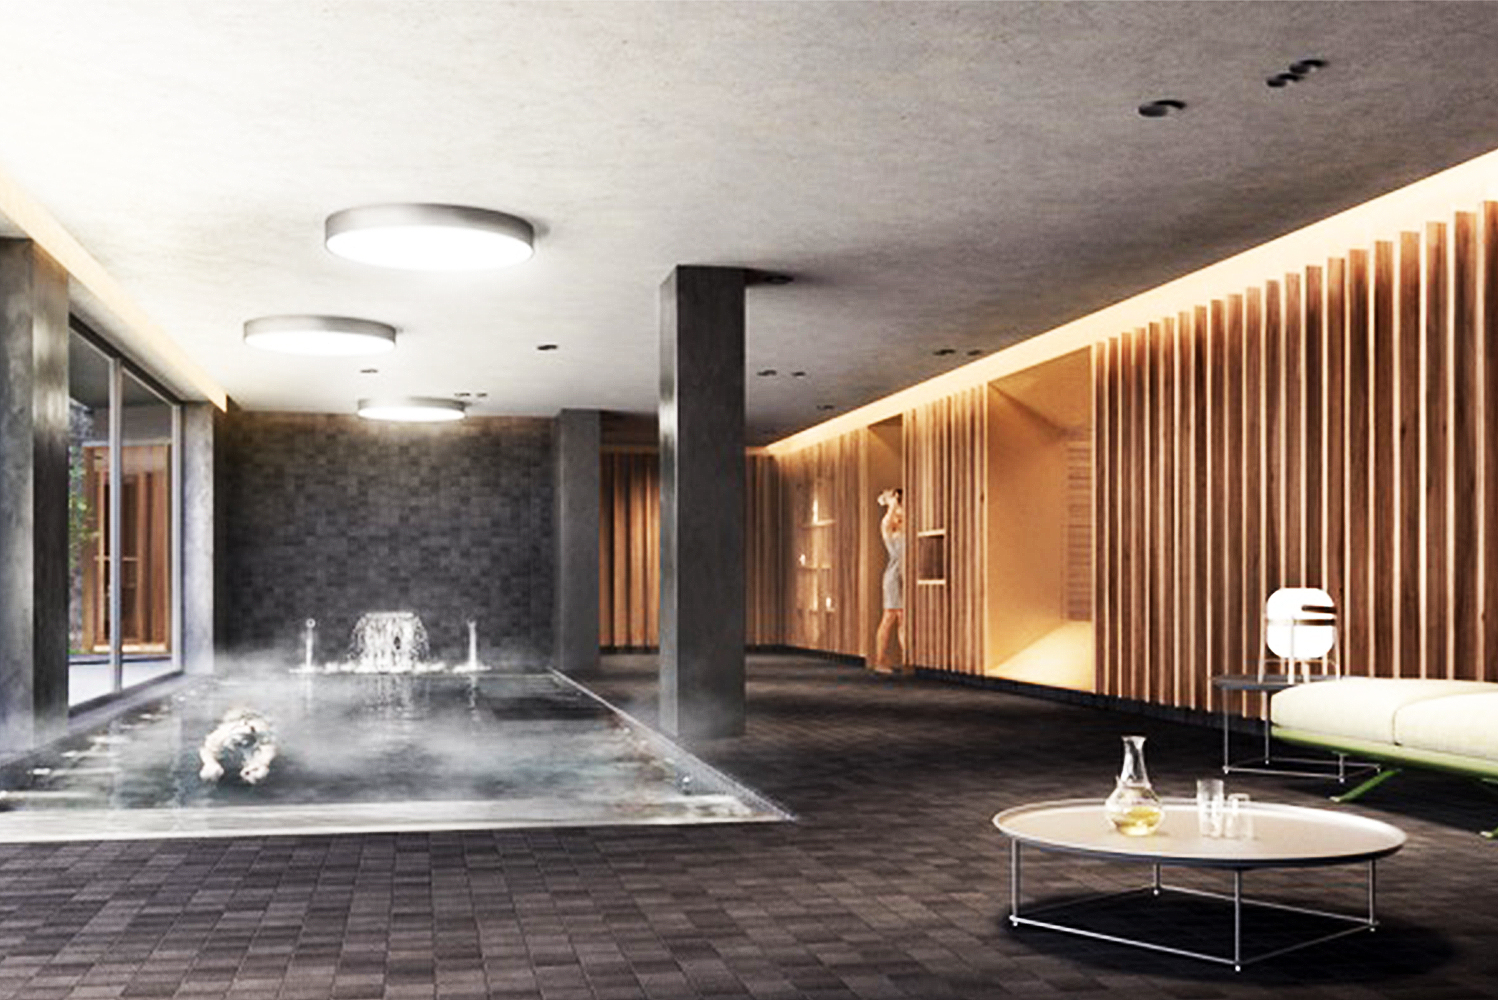 Son Brull will add a 350 square meter (3,767 square foot) spa this March.